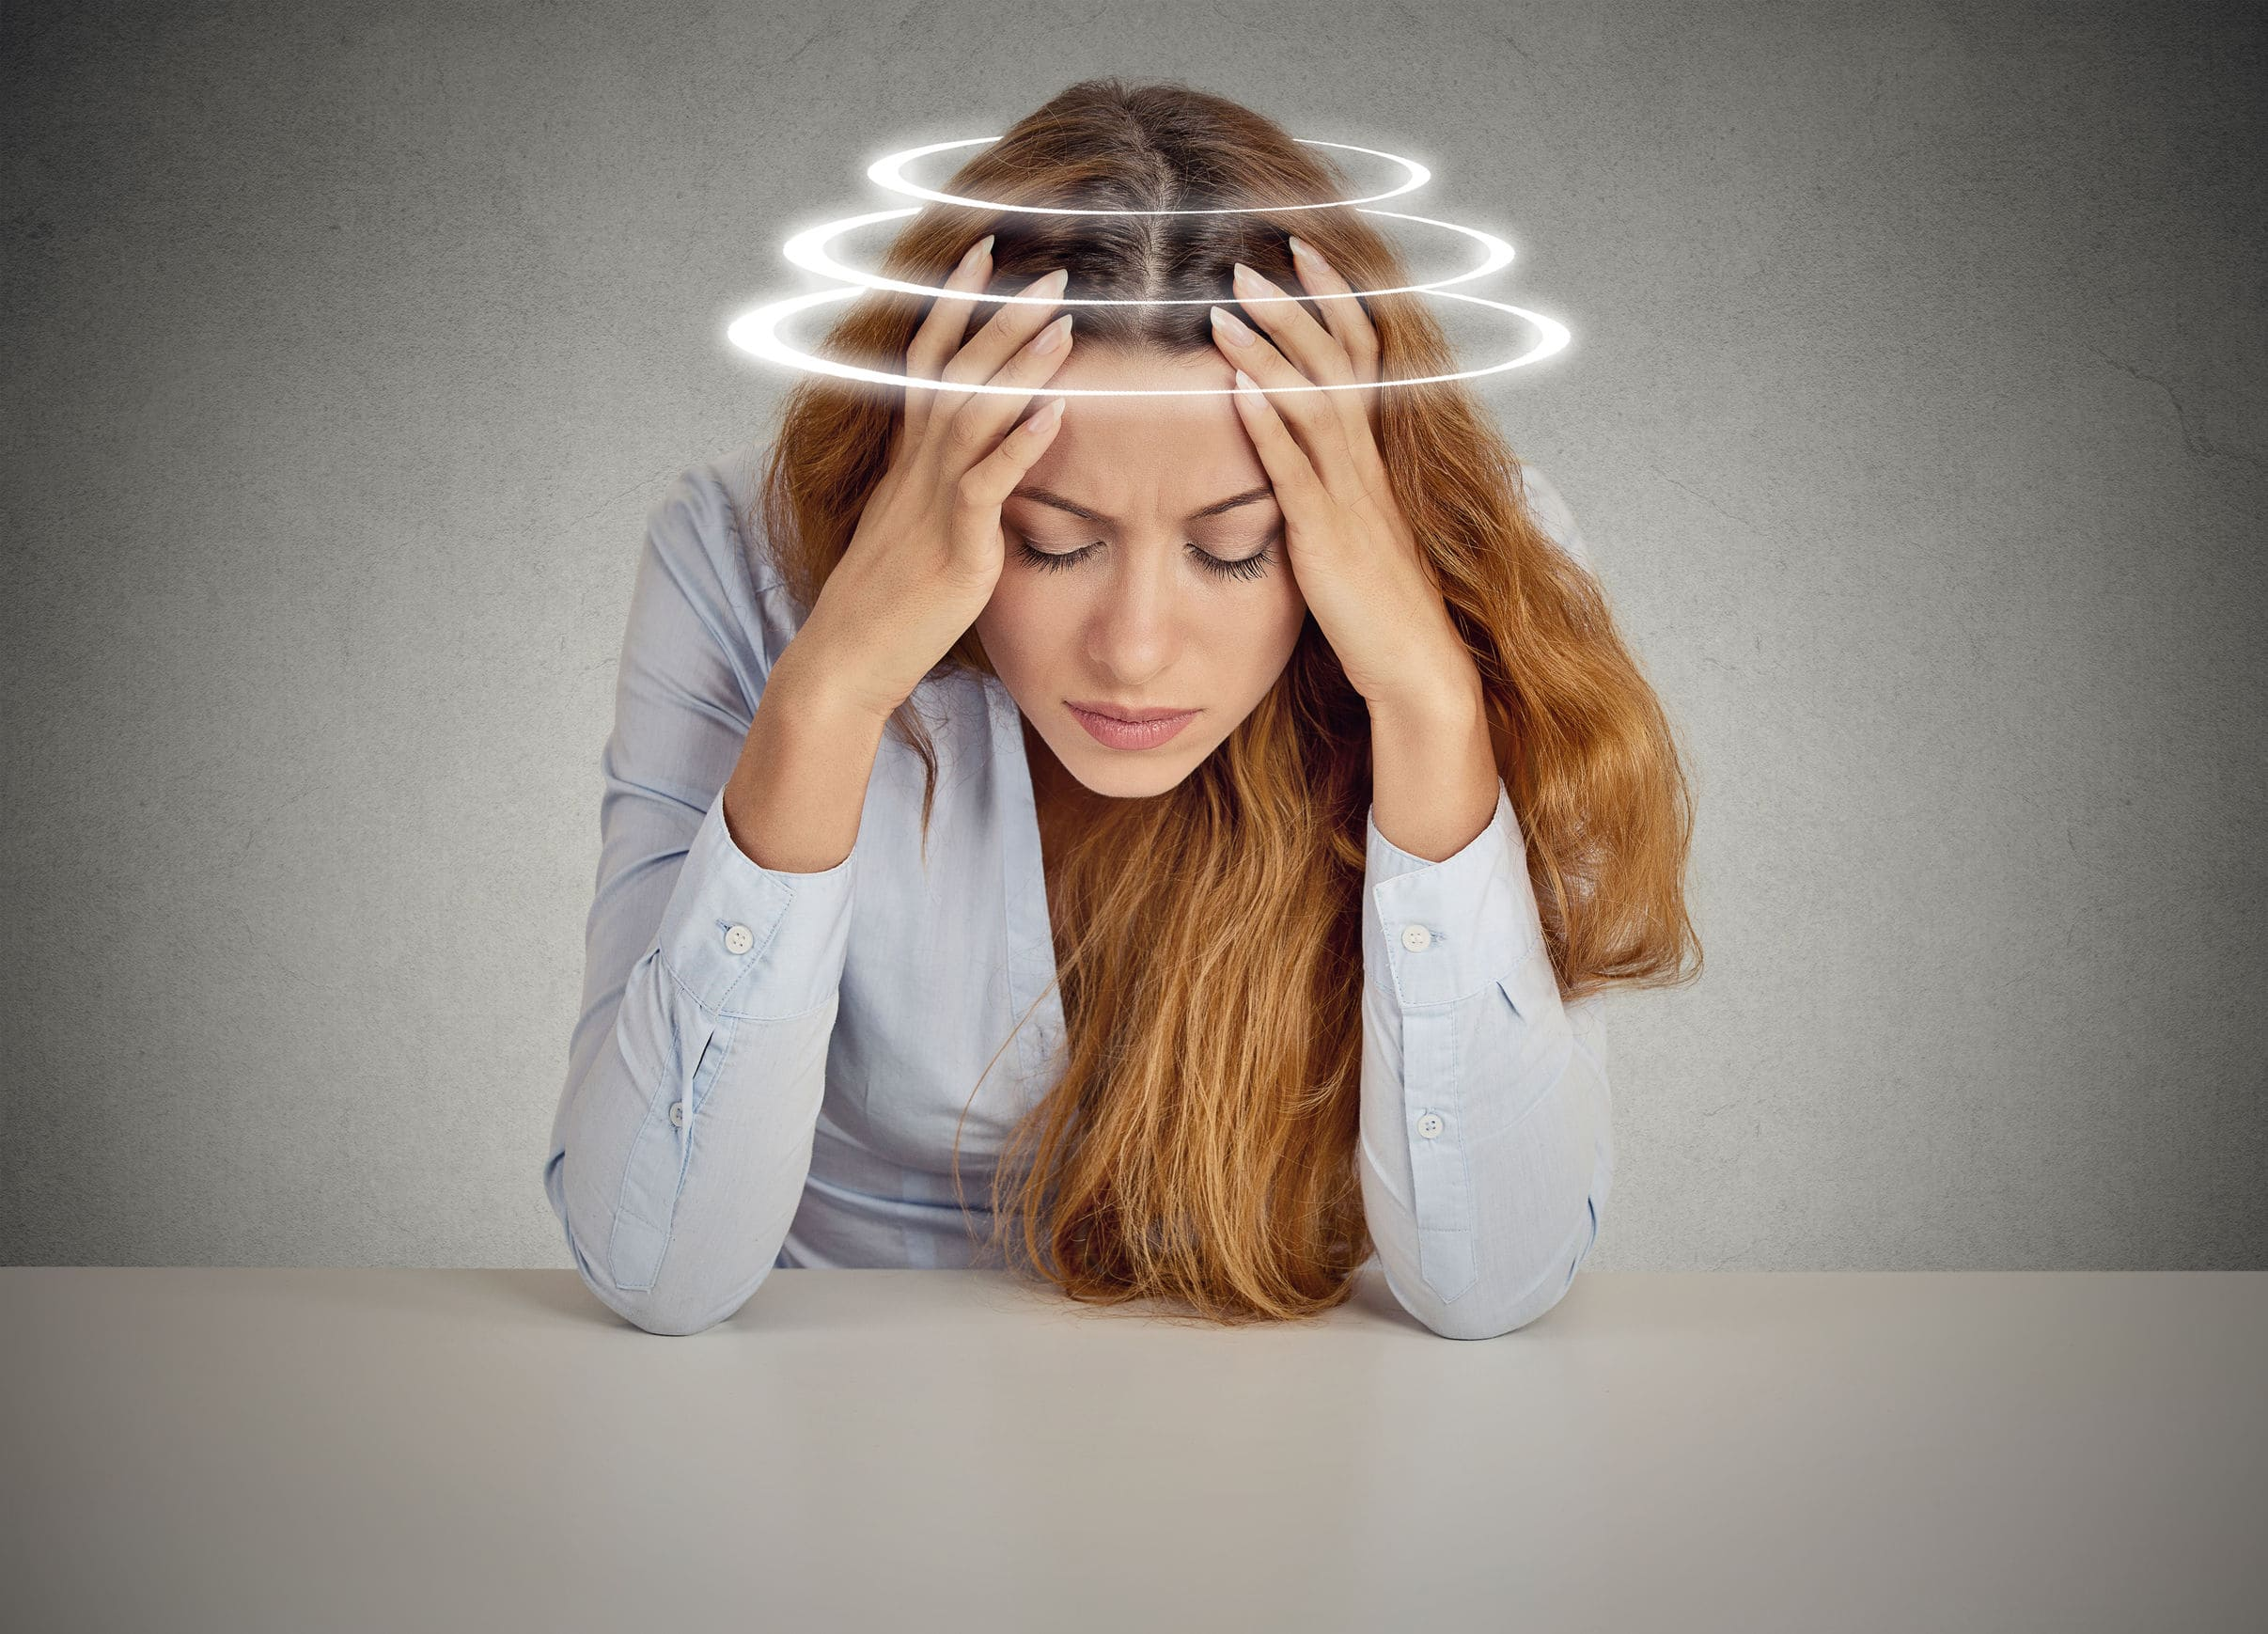 Treating Vertigo and Vestibulopathy with Vestibular Rehabilitation - Vertigo and Vestibulopathy Treatment | https://physiologicnyc.com/physical-therapy/